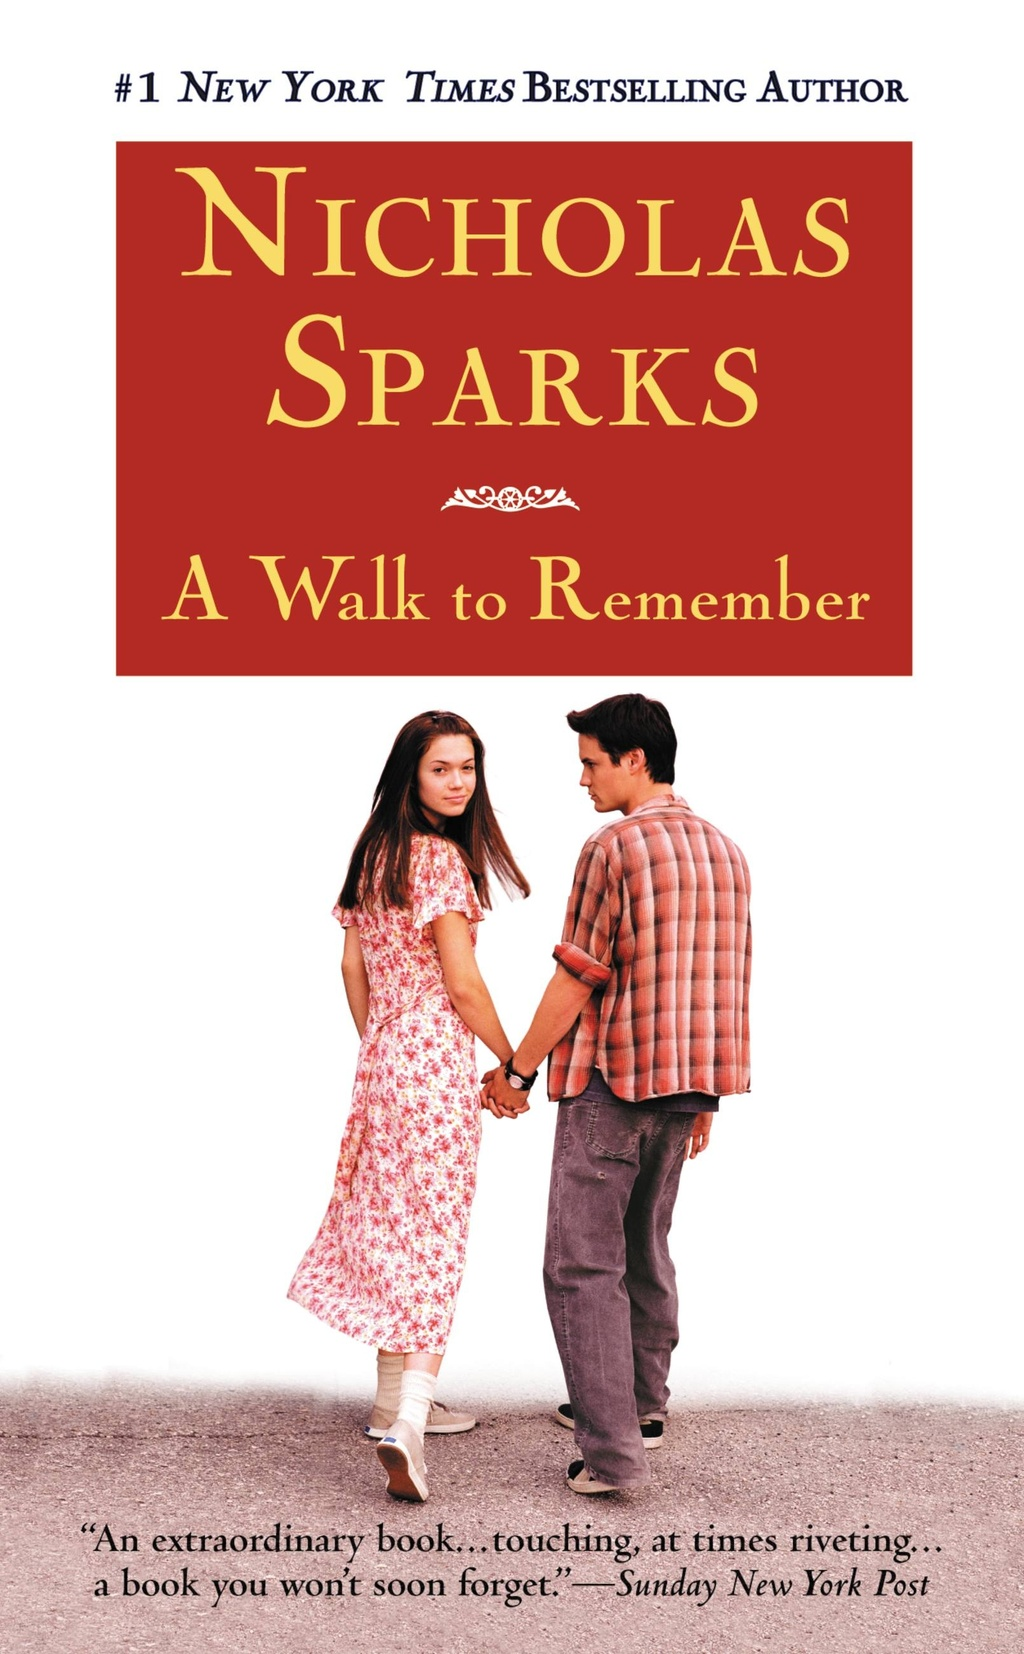 The 5 Most Common Themes Present in a Nicholas Sparks Movie